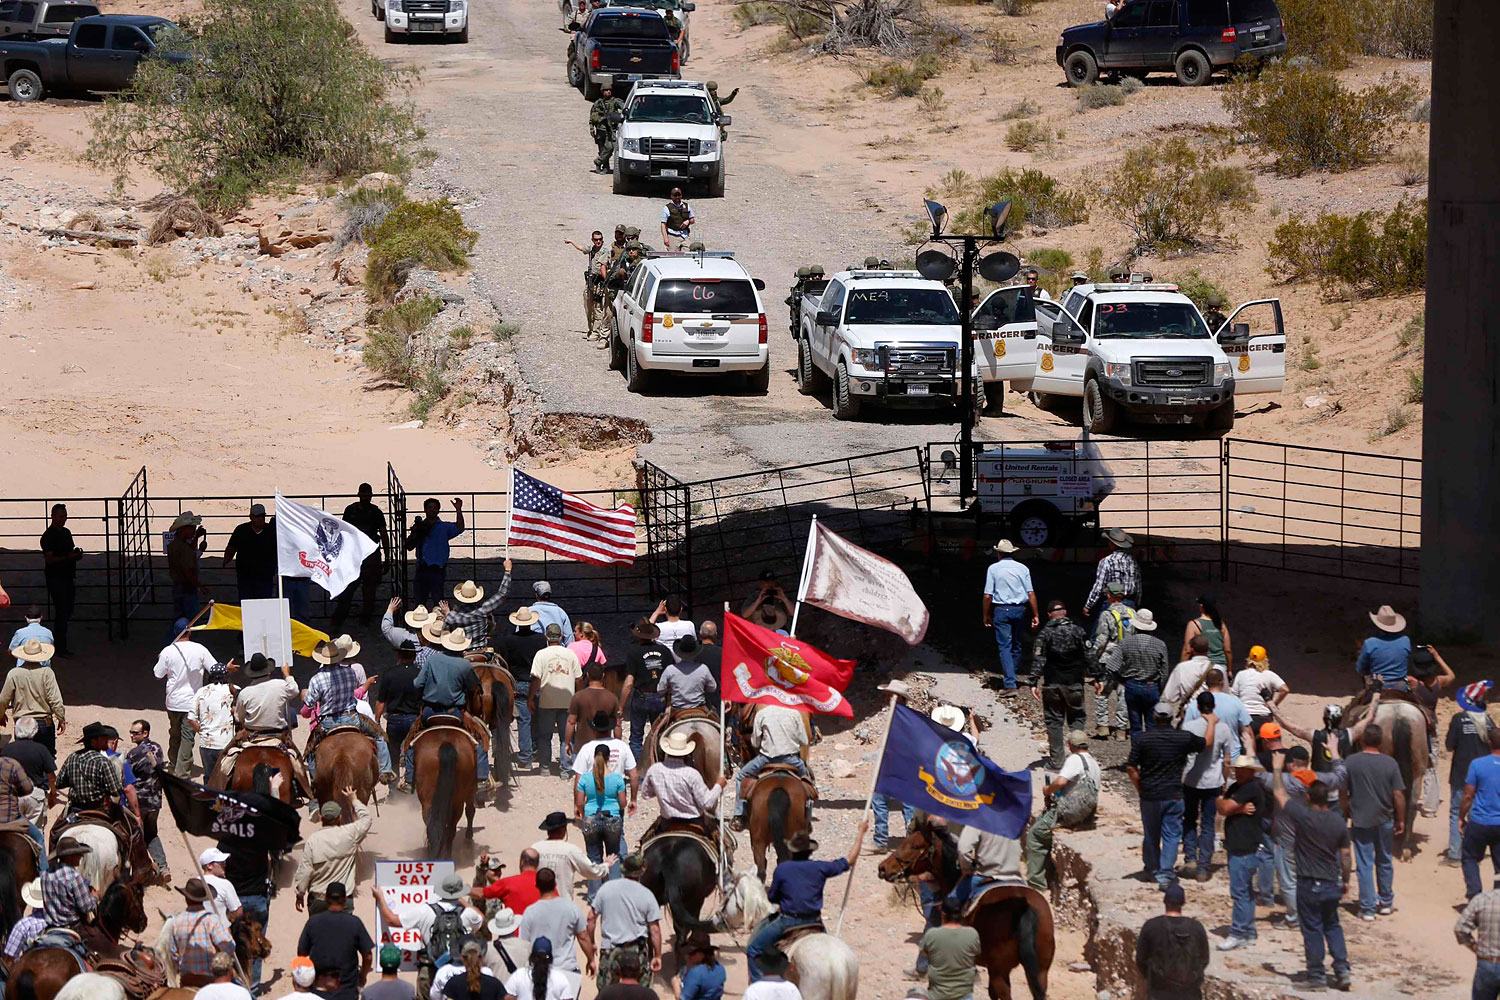 Protesters gathered at the Bureau of Land Management's base camp, where cattle seized from rancher Cliven Bundy was being held, near Bunkerville, Nevada, April 12, 2014.